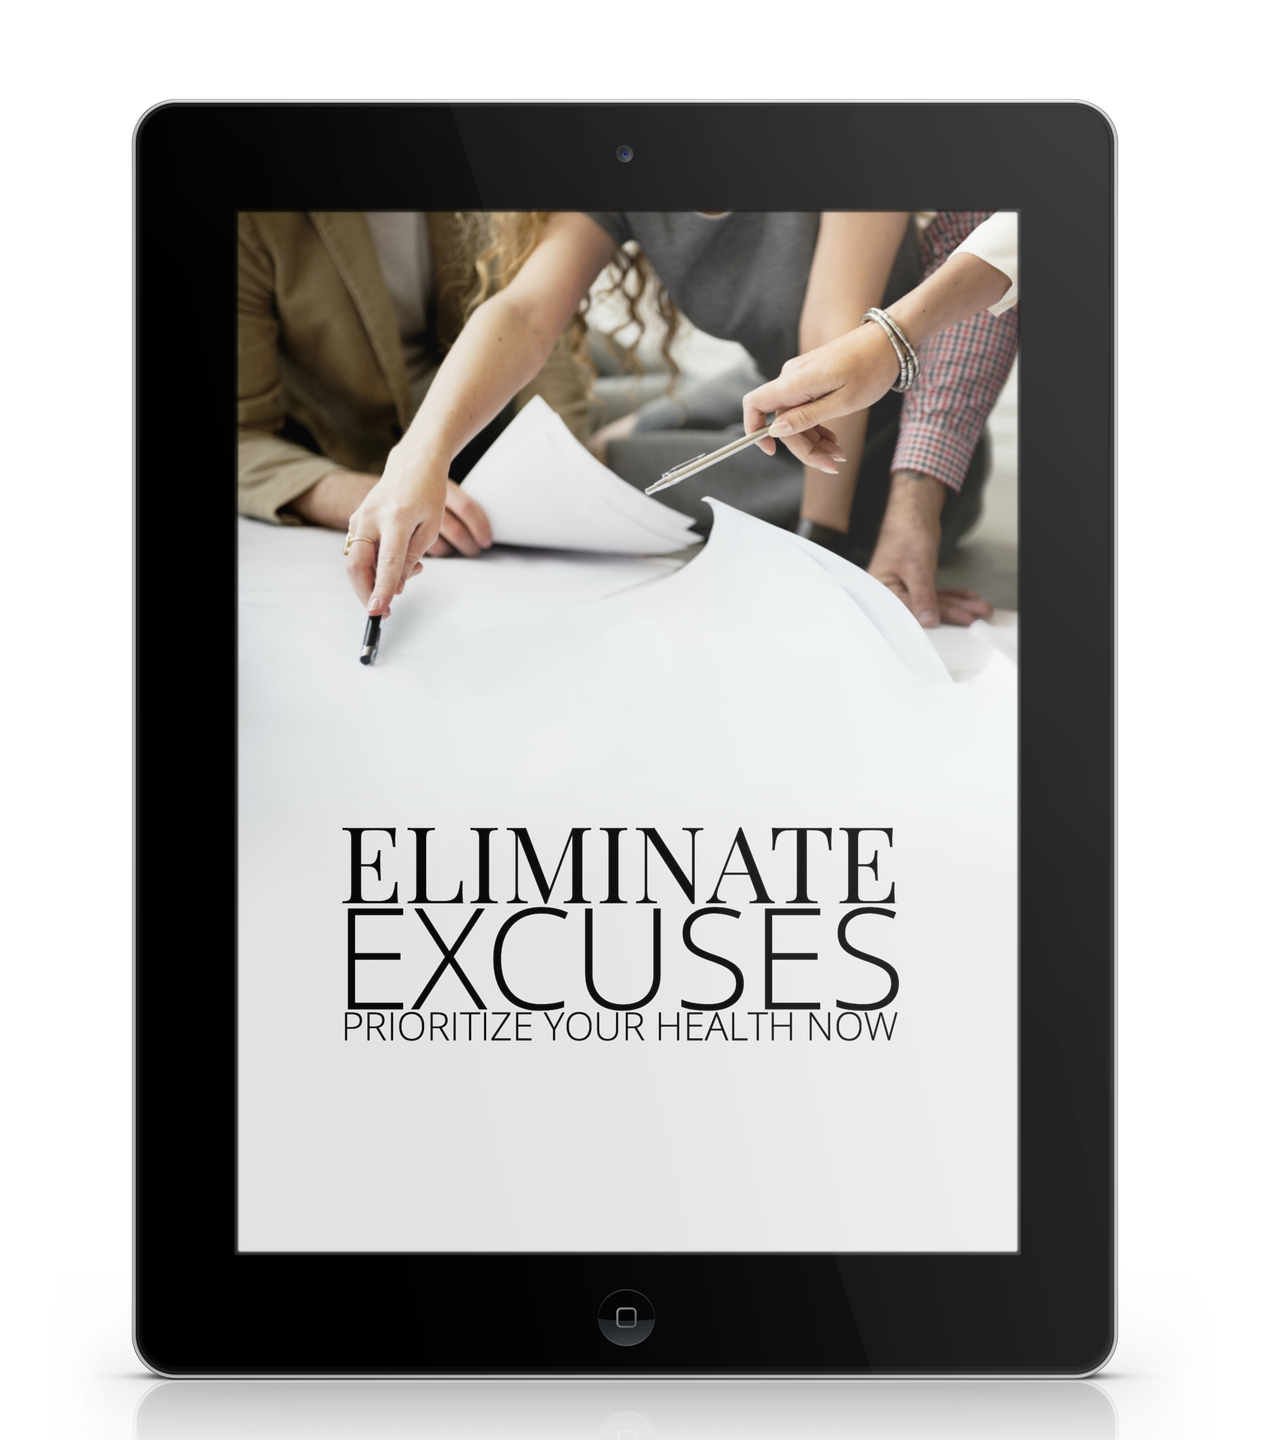 Eliminate Excuses